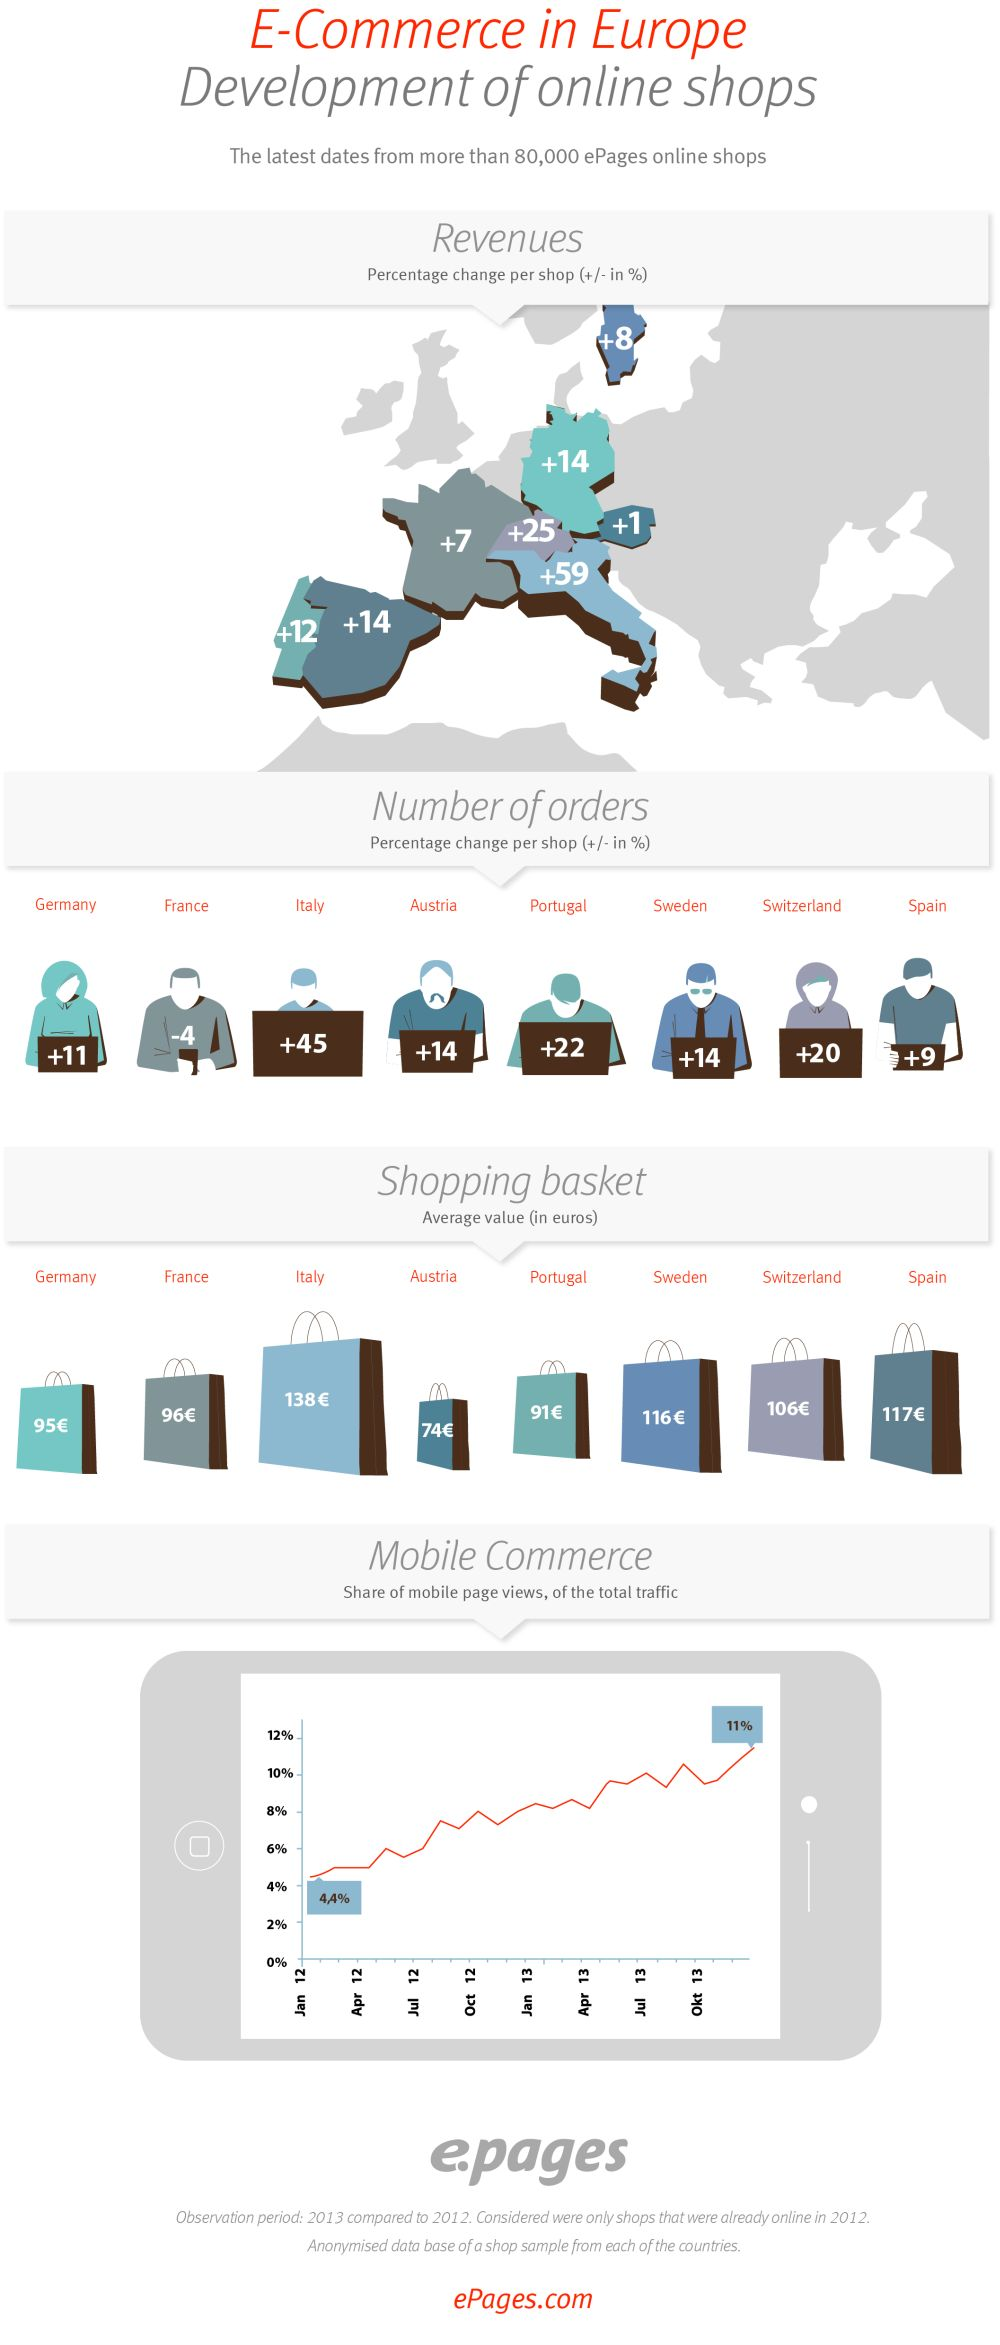 ePages ecommerce Europe 2013